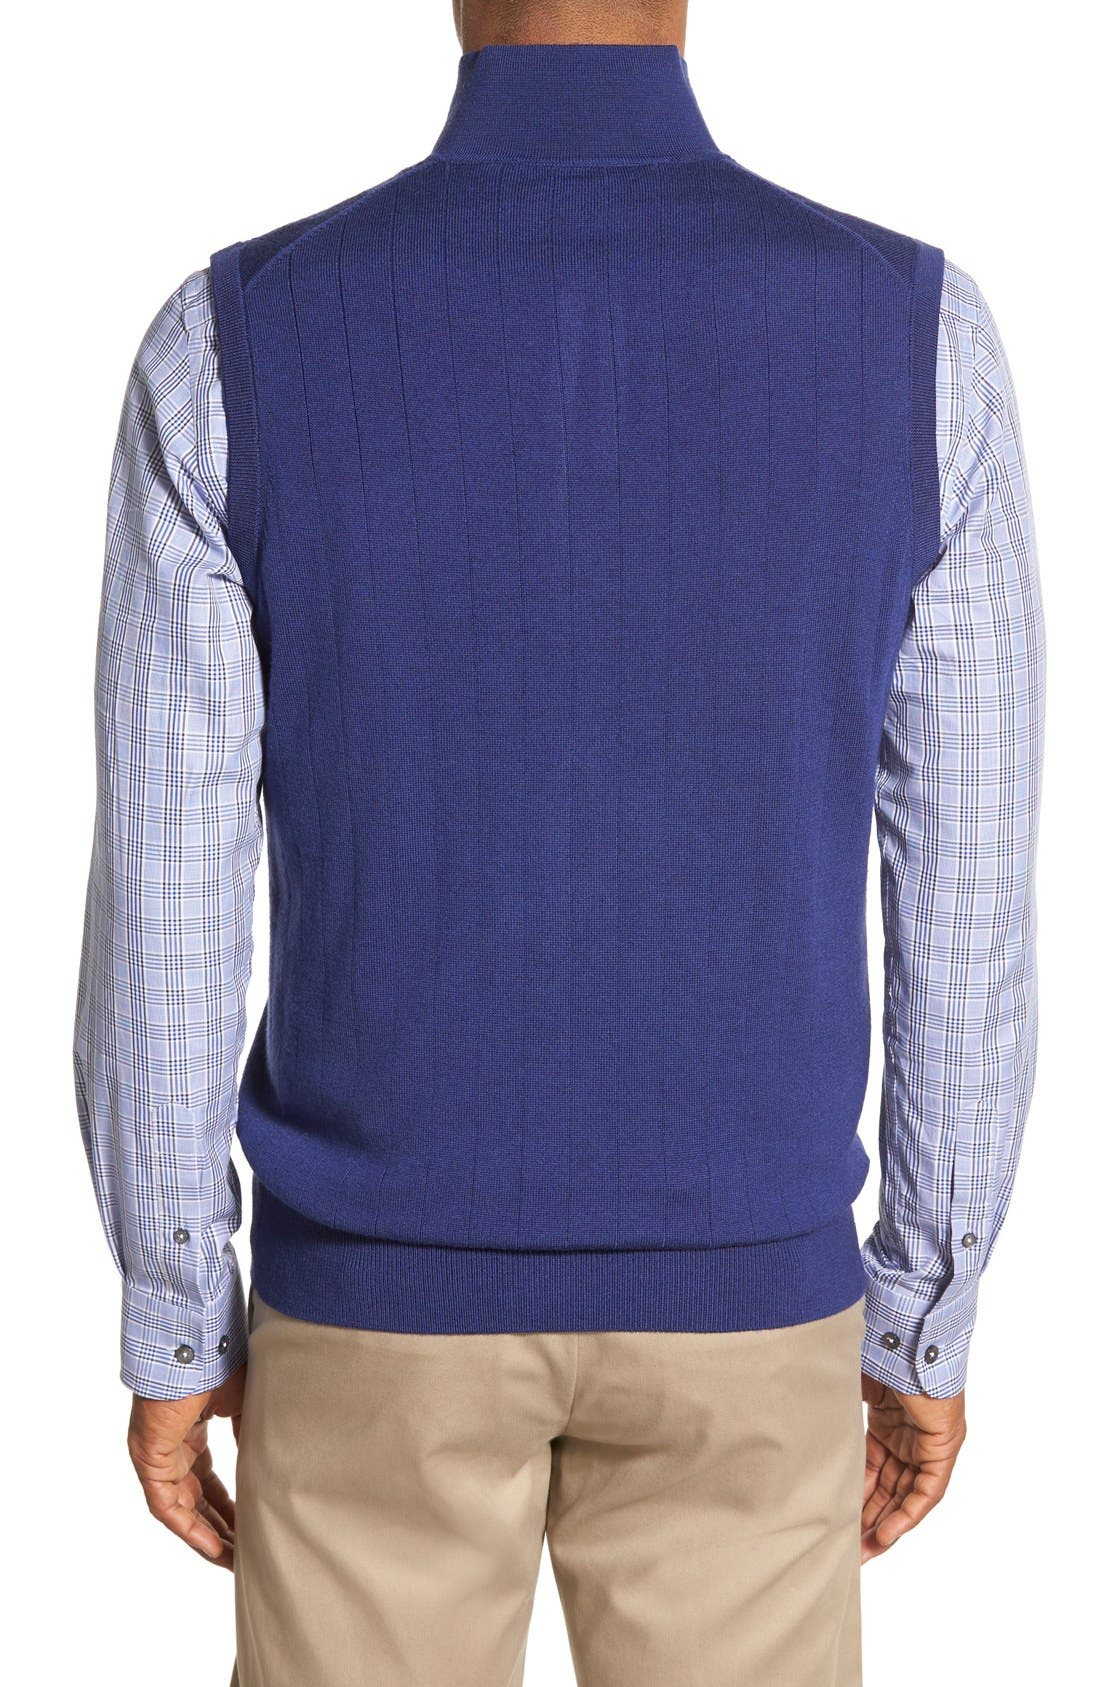 Quarter Zip Wool Sweater Vest,                             Alternate thumbnail 2, color,                             Summer Navy